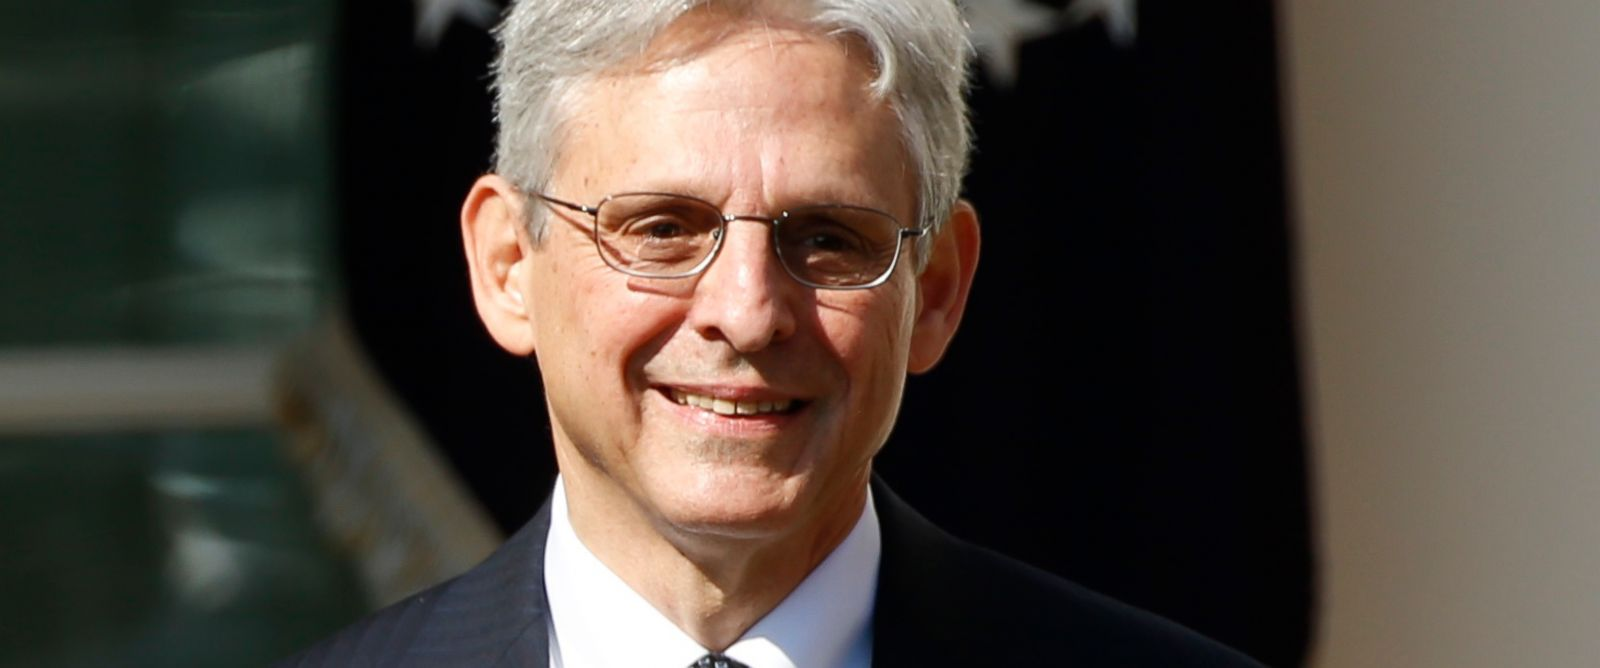 PHOTO: Appeals Court Judge Merrick Garland speaks in the Rose Garden of the White House after being nominated to the U.S. Supreme Court in Washington, March 16, 2016.